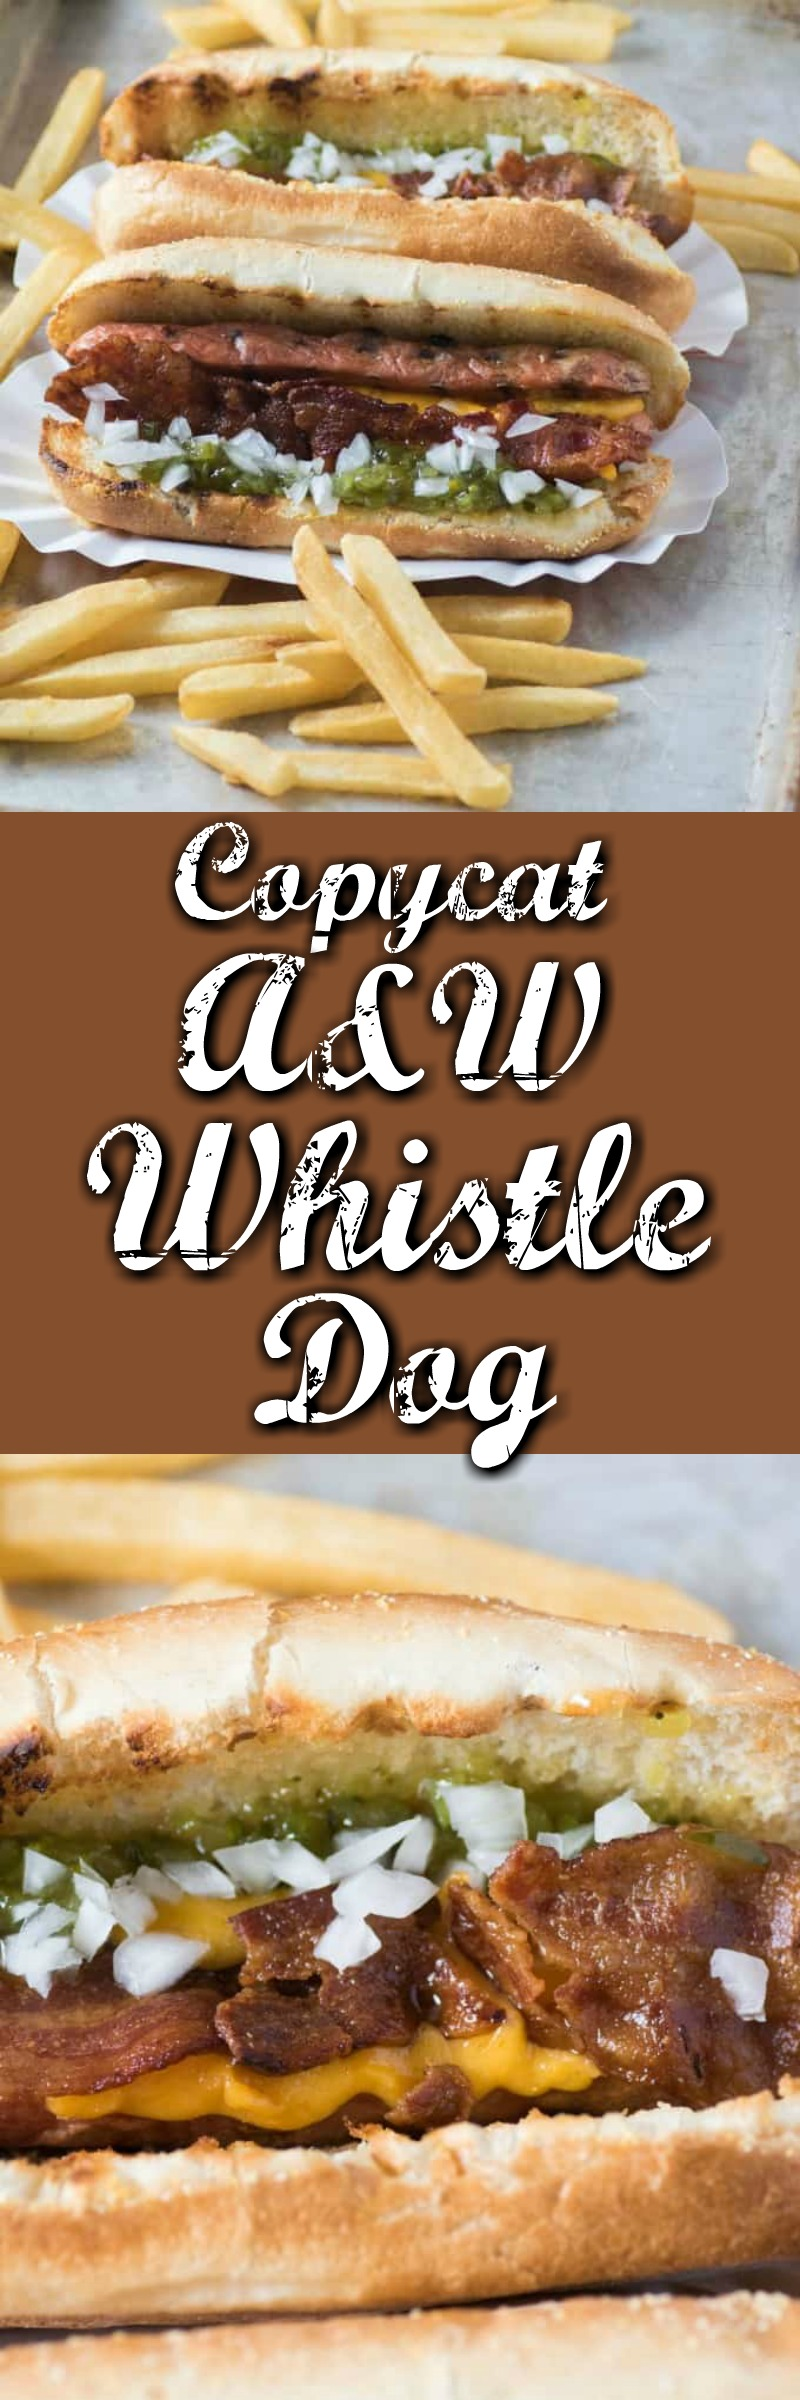 The A&W Whistle Dog is easy to create. It takes a little more planning than a plain old hot dog but it is worth it trust me. # WhistleDog #A&WWhistleDog #Hotdog #Copycatwhistledog